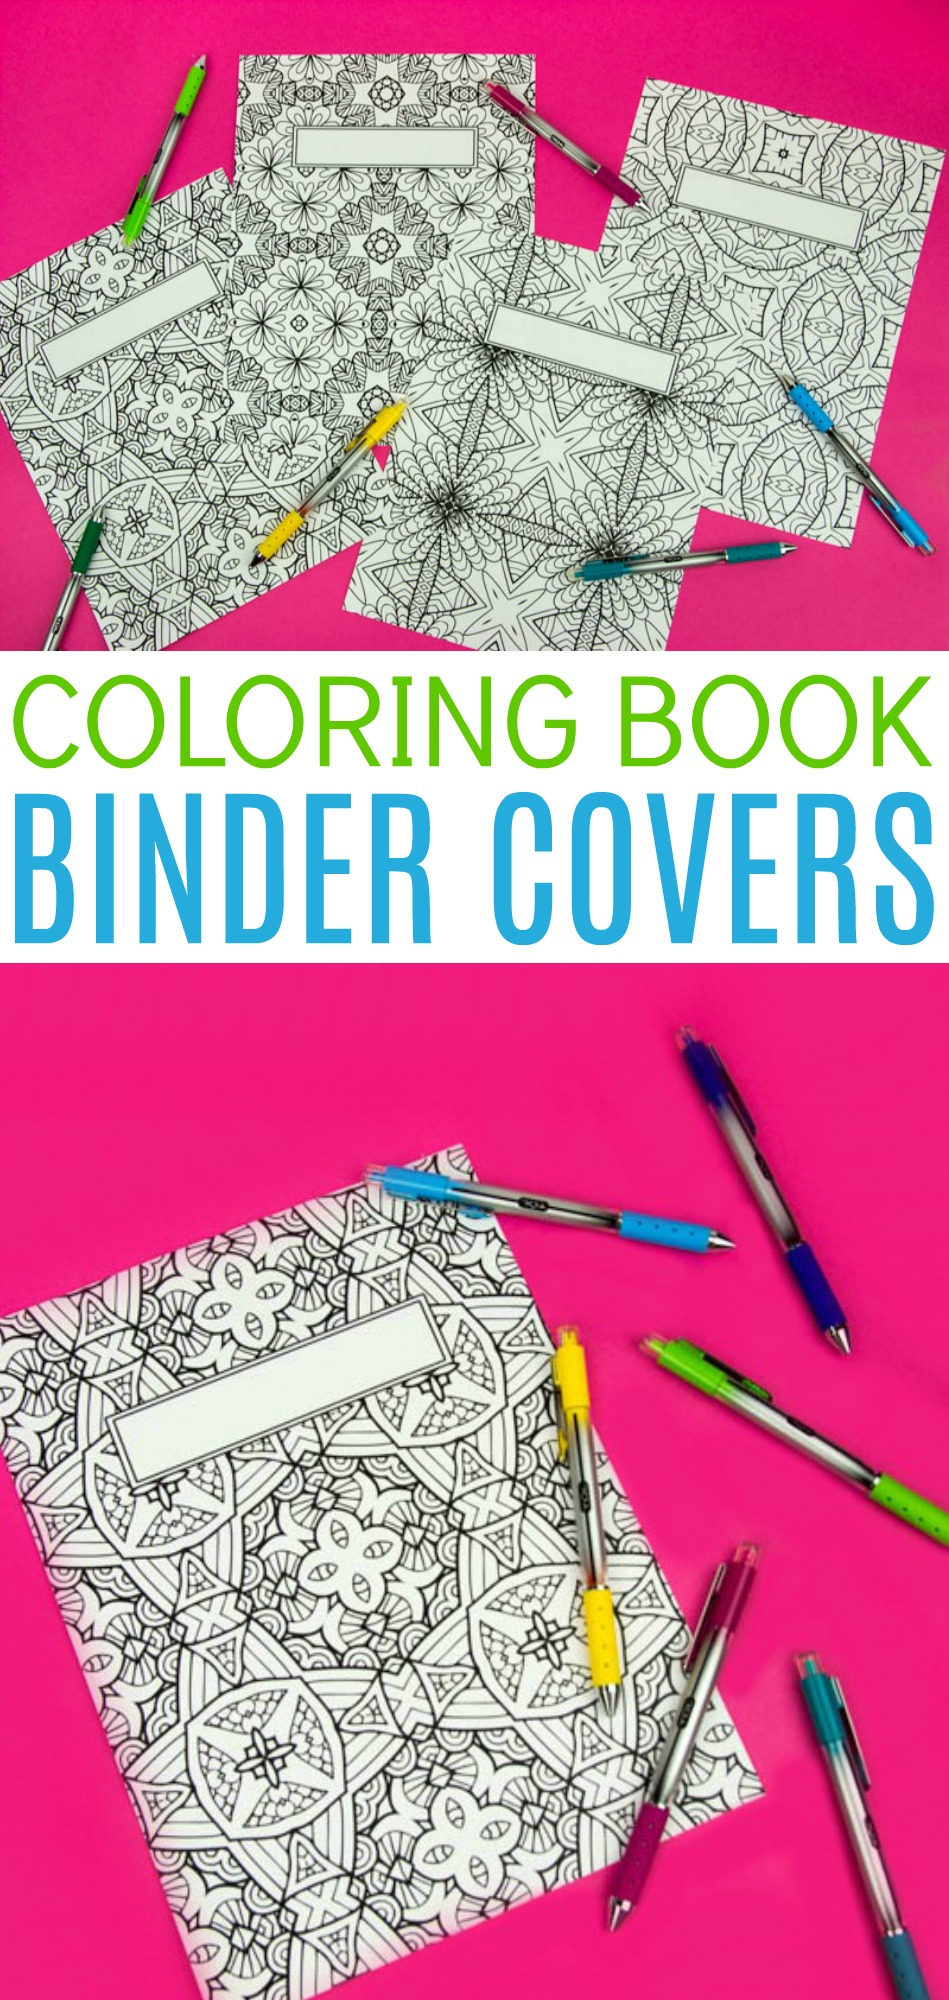 Coloring Book Binder Covers- Free Printable - A Little Craft In Your Day - Free Printable Binder Covers To Color